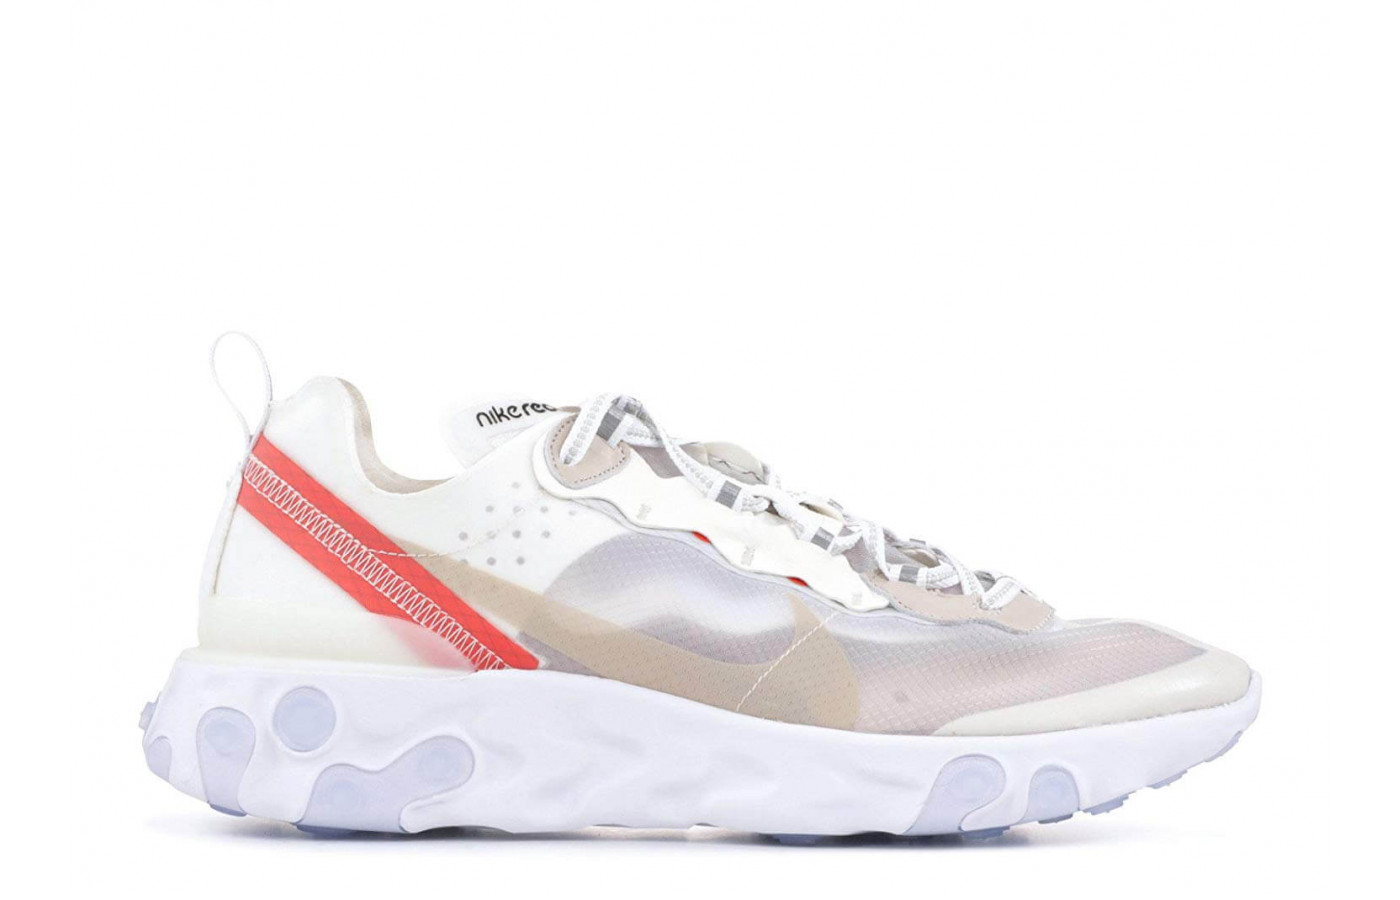 The medial side of the Nike React Element 87